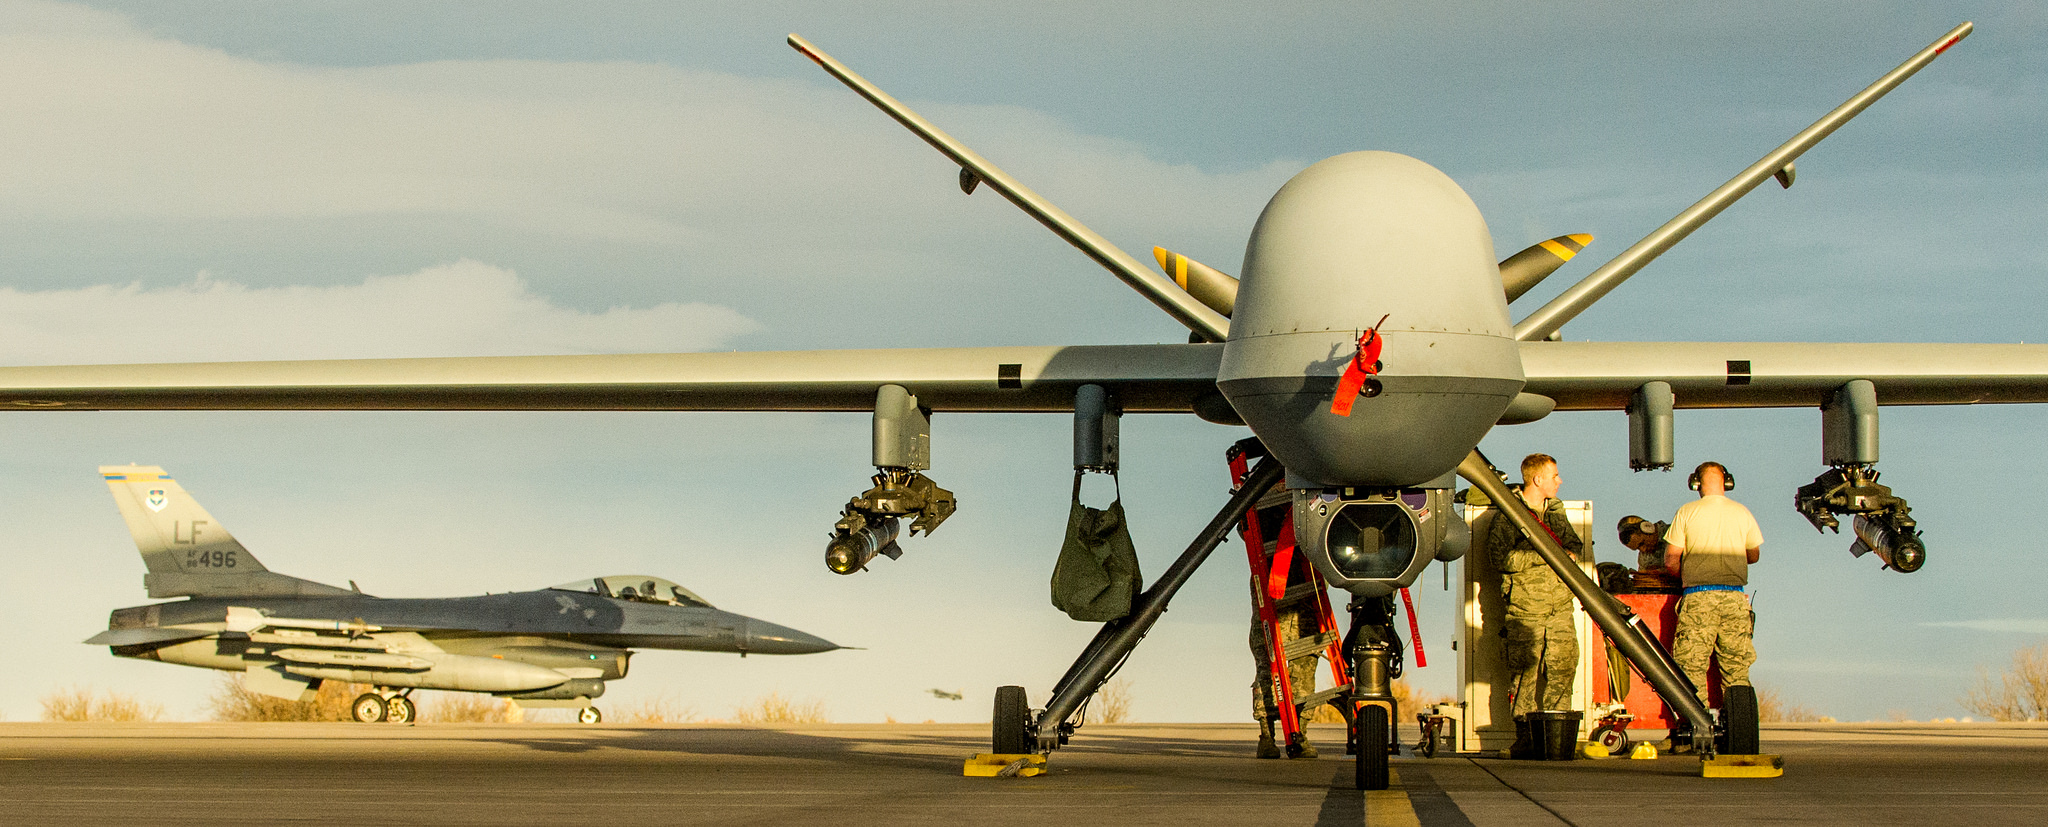 An MQ-9 Reaper with an F-16 in the background. (Airman Magazine/ Flickr)